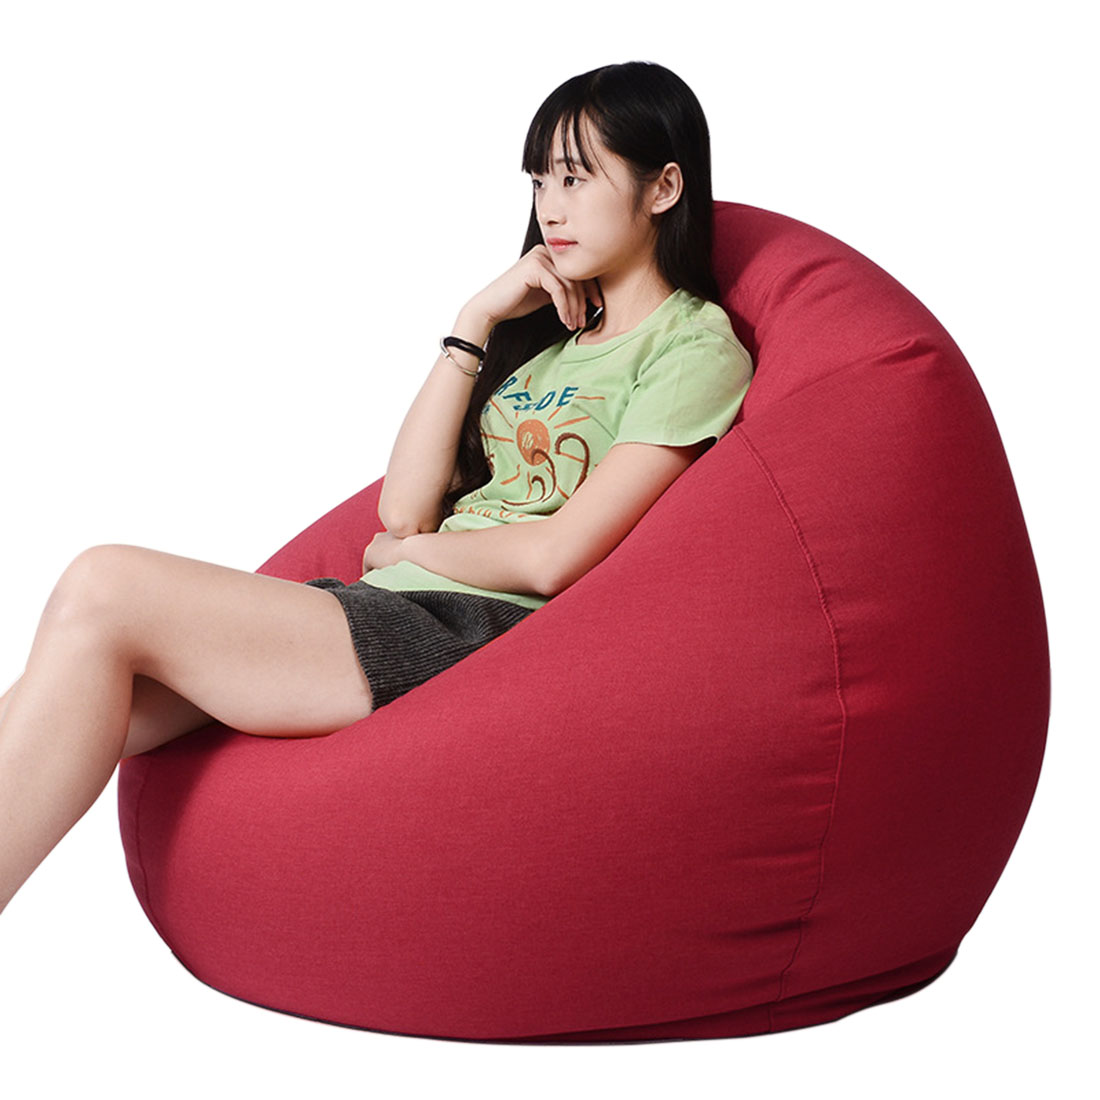 Surprising Lazy Bean Bag Sofas Living Room Lounger Sofas Bedroom Relax Caraccident5 Cool Chair Designs And Ideas Caraccident5Info